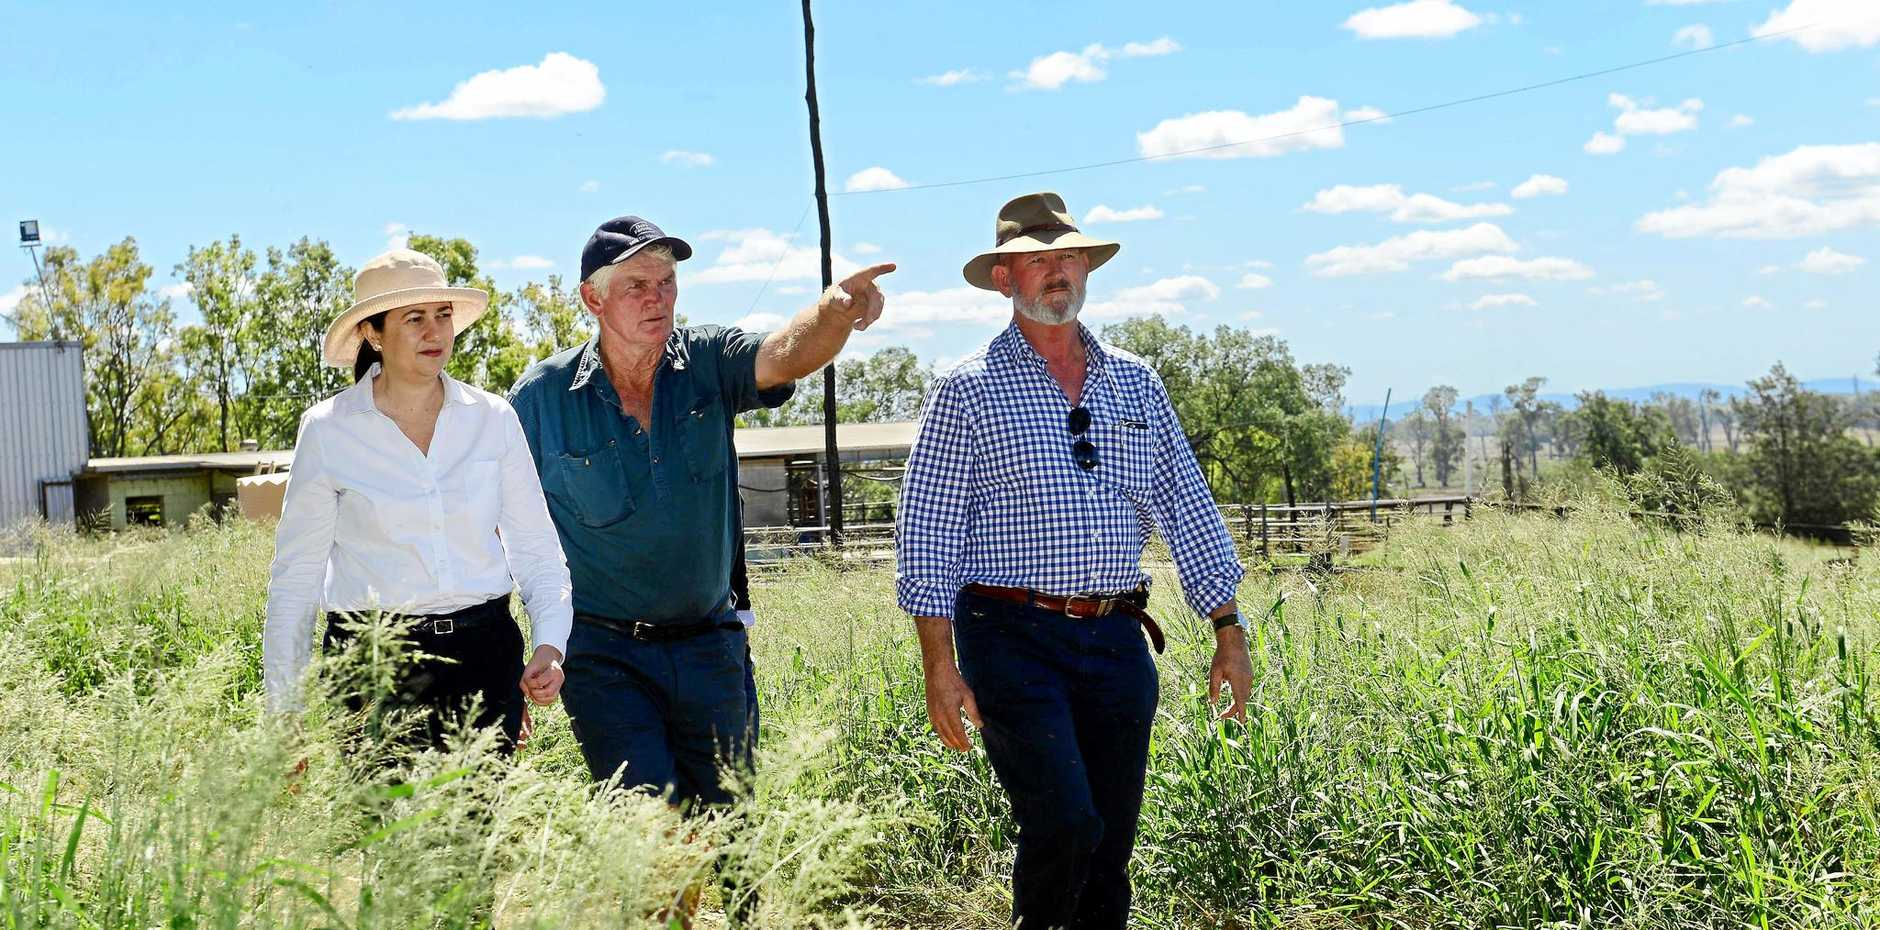 Queensland Premier Annastacia Palaszczuk and Minister for Agriculture Bill Byrne met with Scenic Rim farmer and vice-president of the Queensland Dairy Farmers organisation Ross McInnes (centre) to inspect recent flood damage in the region.